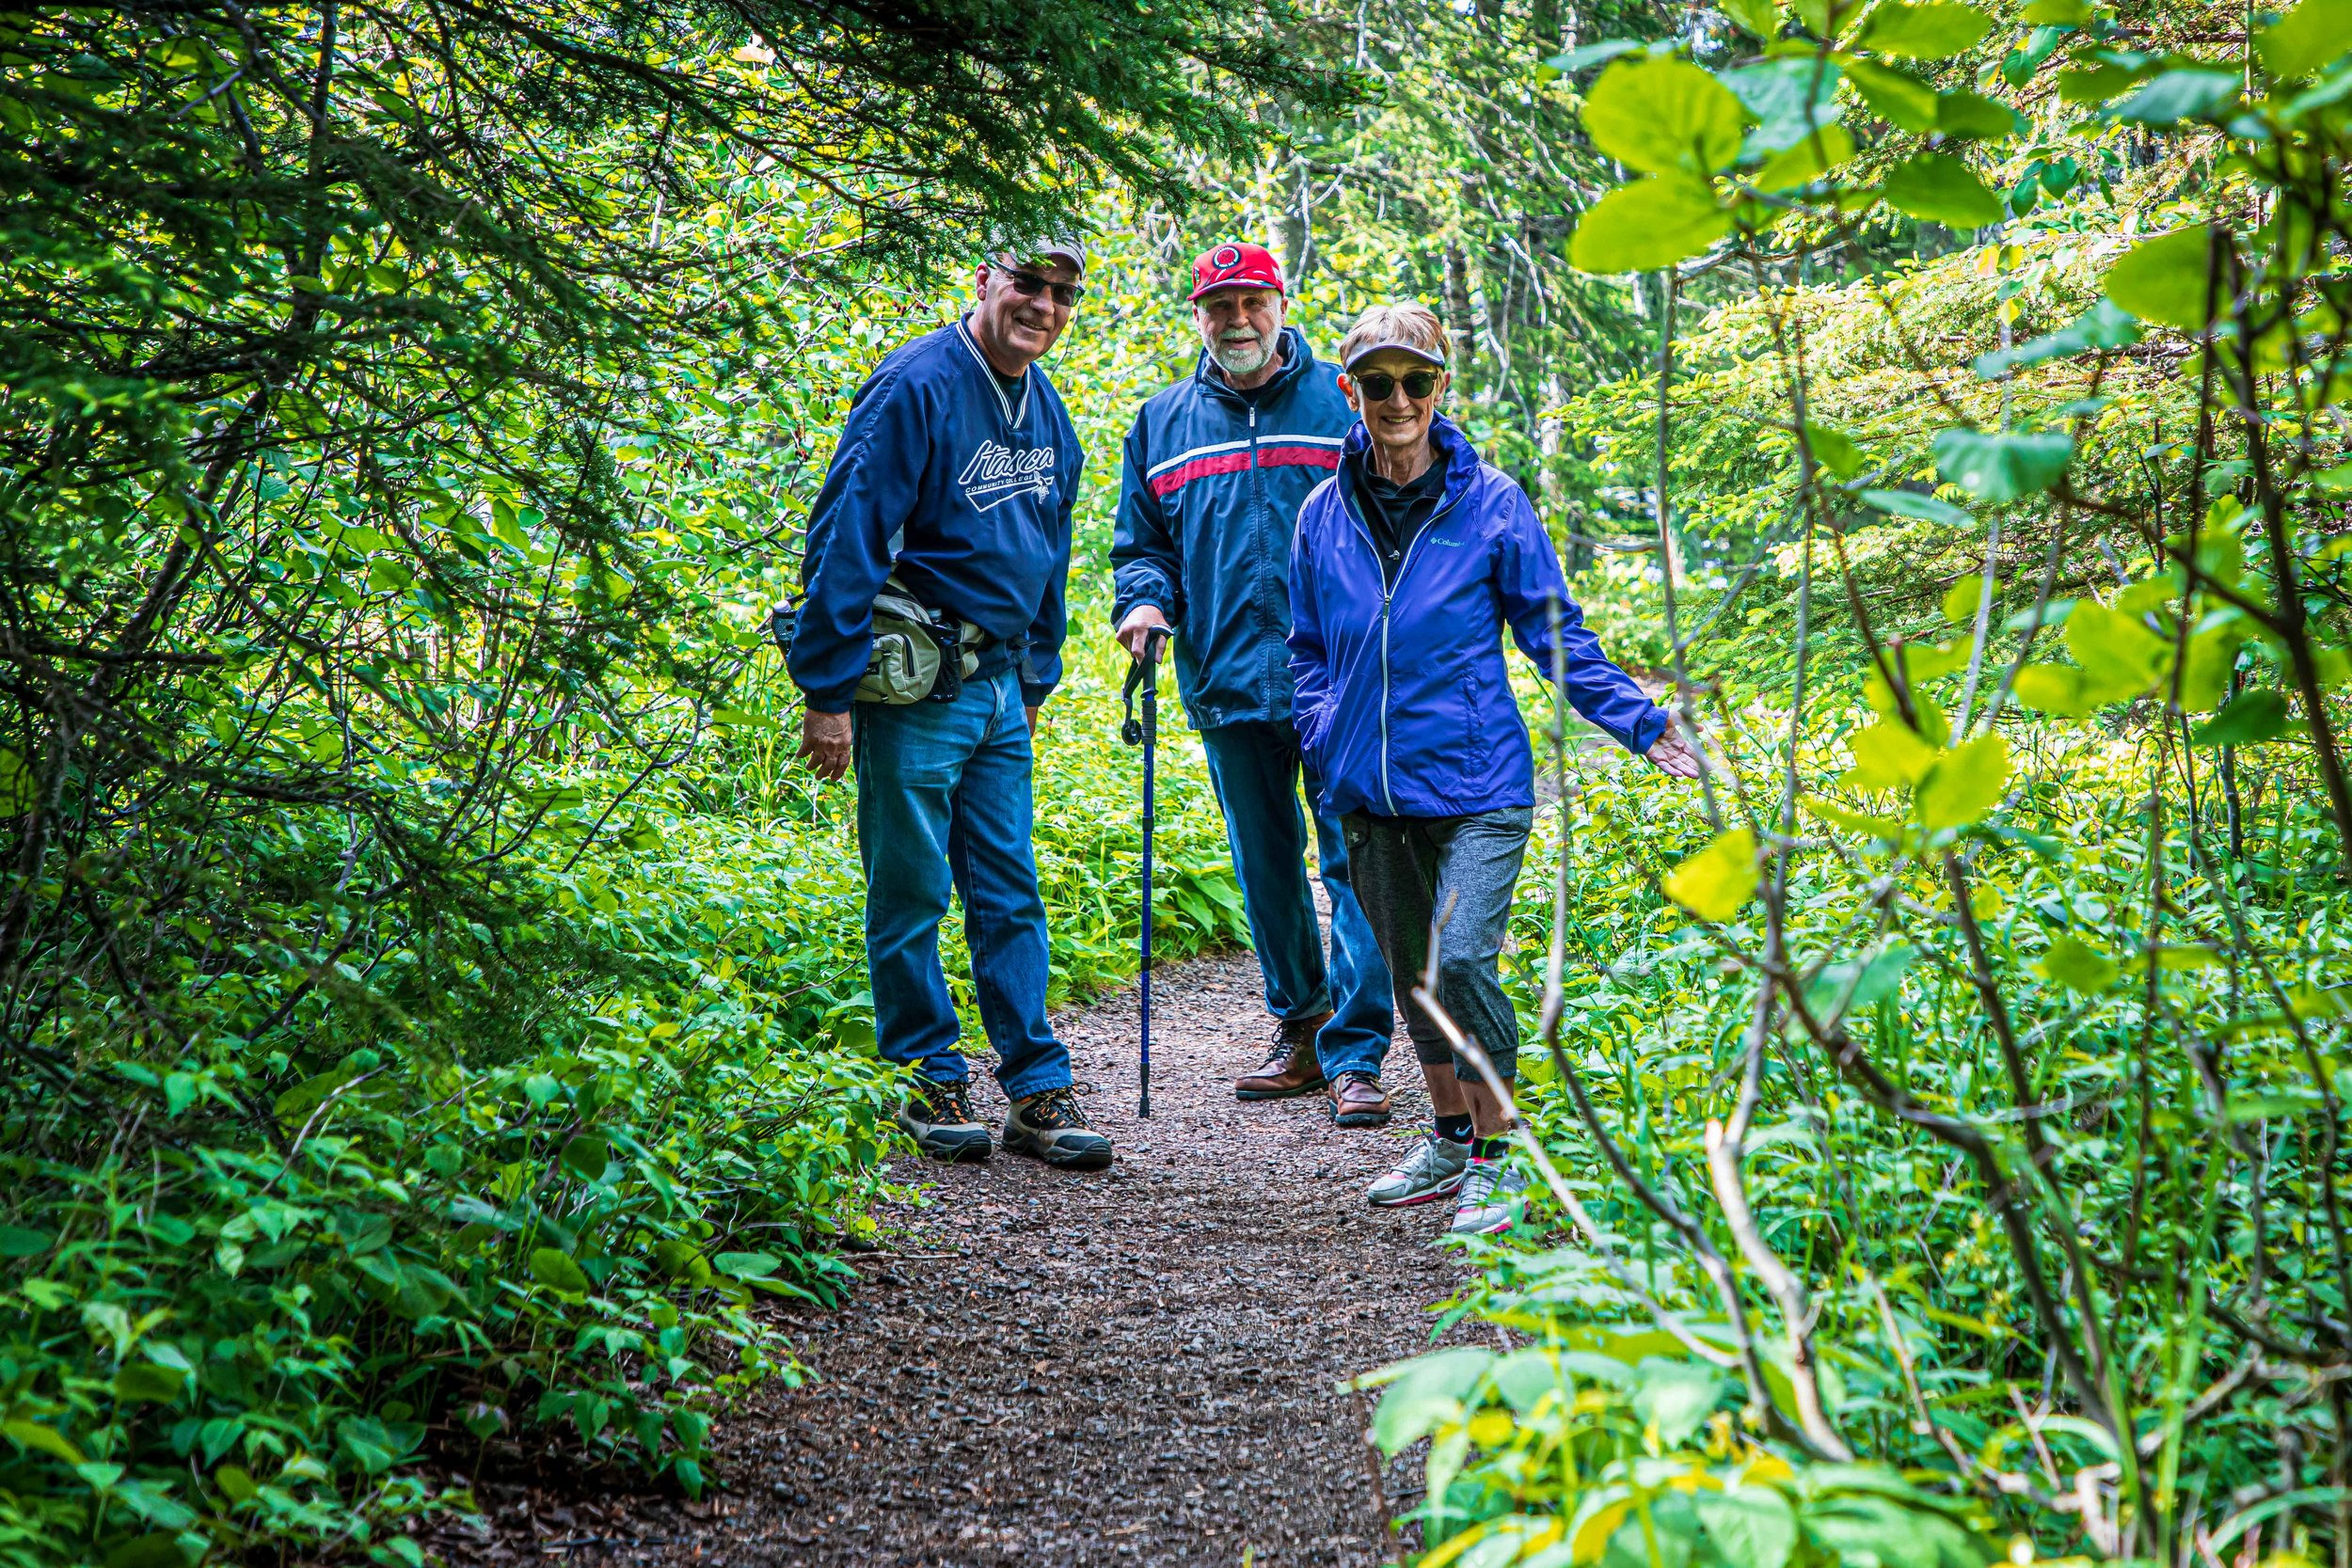 Minnesota North Shore Forest: Not Lost